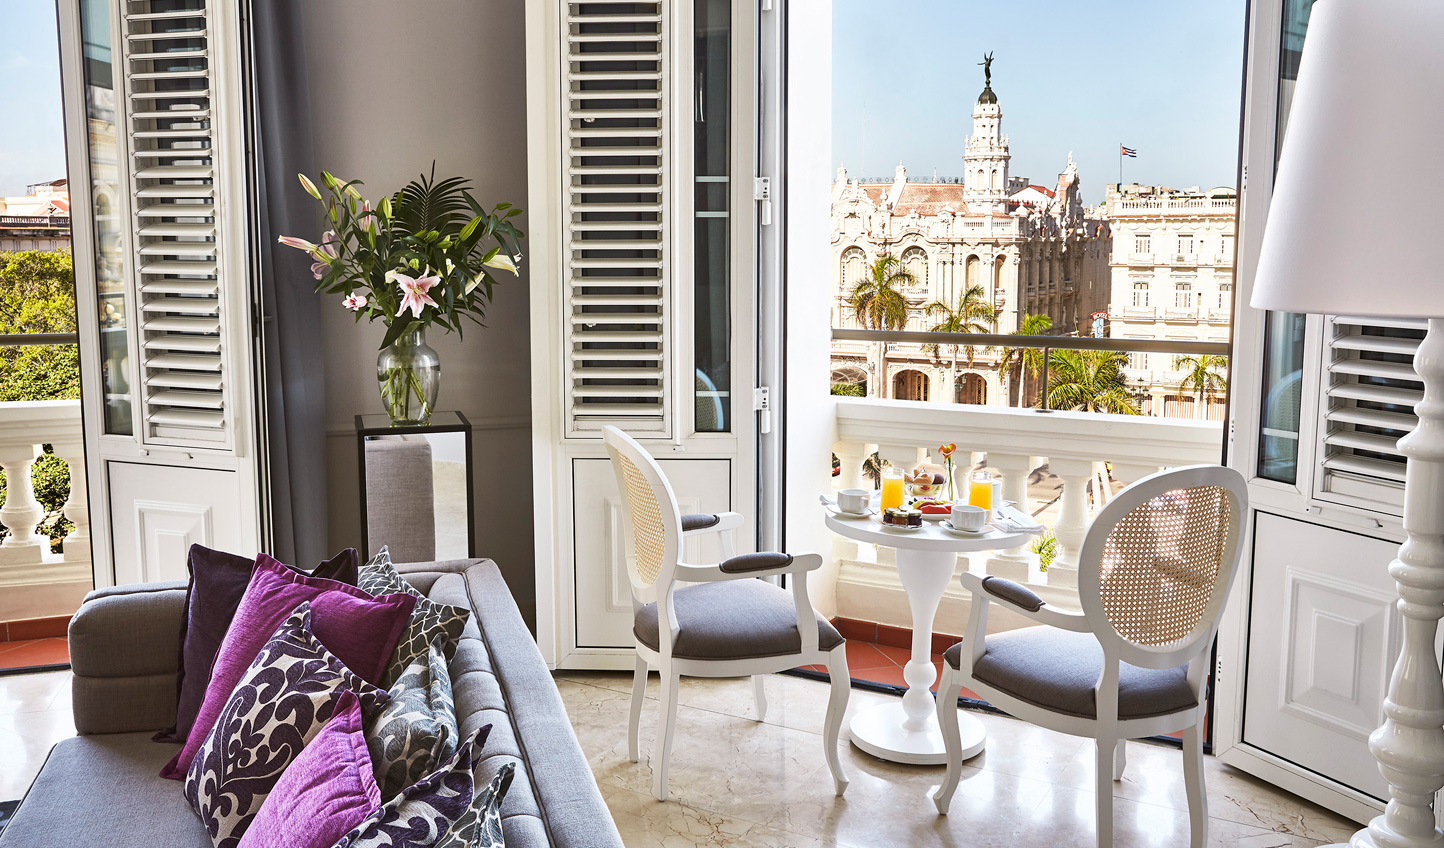 Soak in views of the Old Town from your suite